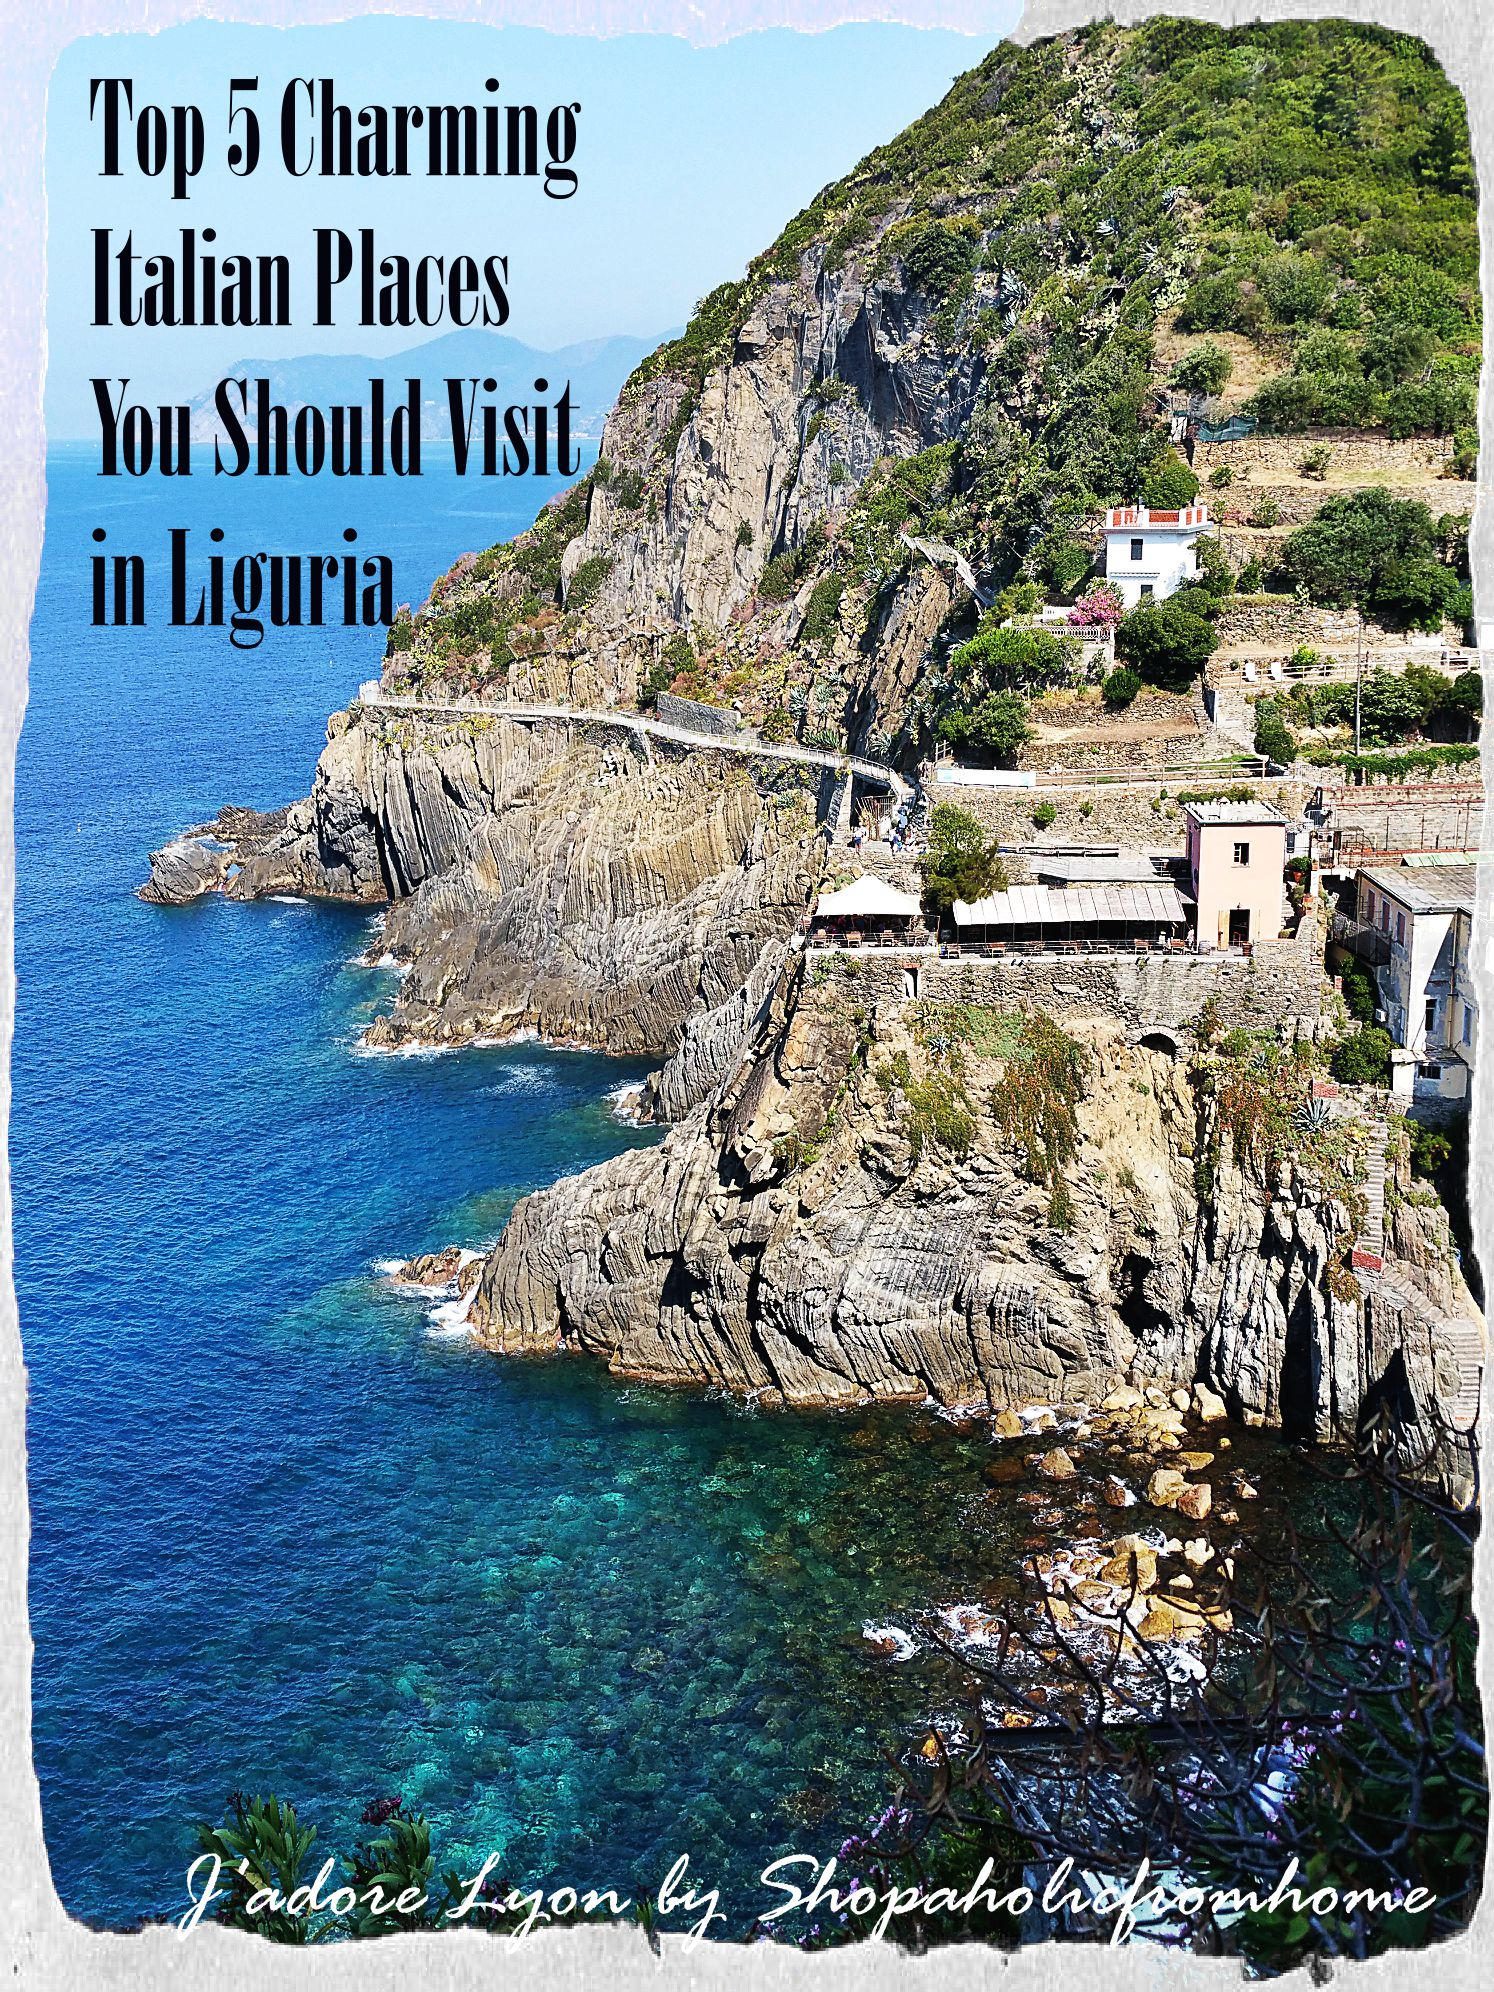 Top 5 Charming Italian Places You Should Visit in Liguria - Feature